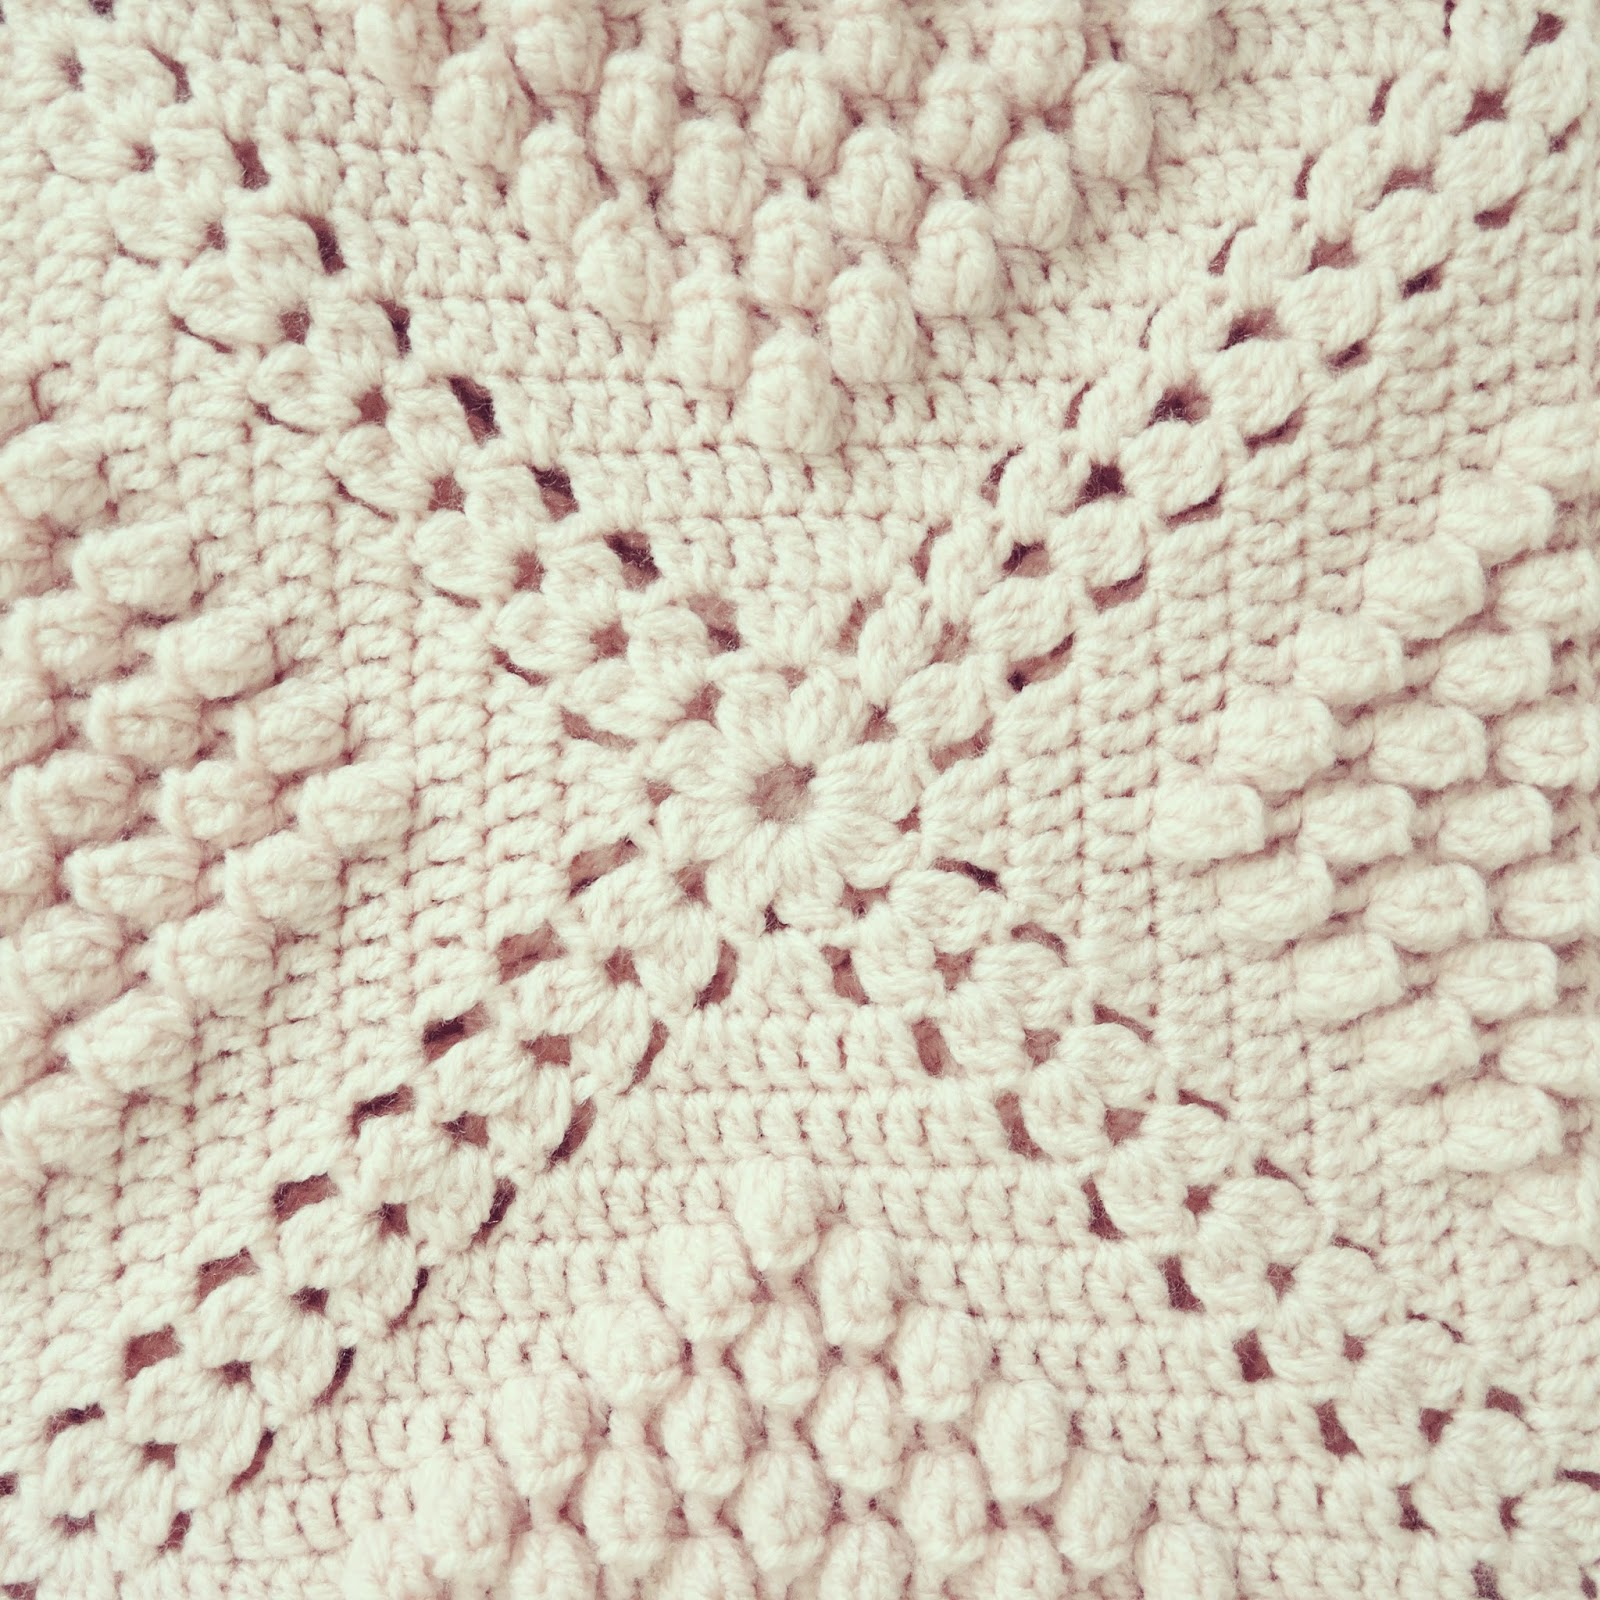 crochet and blanket Easy crochet baby blanket this is a fun and easy crochet baby blanket tutorial using 2 big balls of bernat baby yarn in a bulky, chenille type yarn making it super soft and spongy but still light weight.